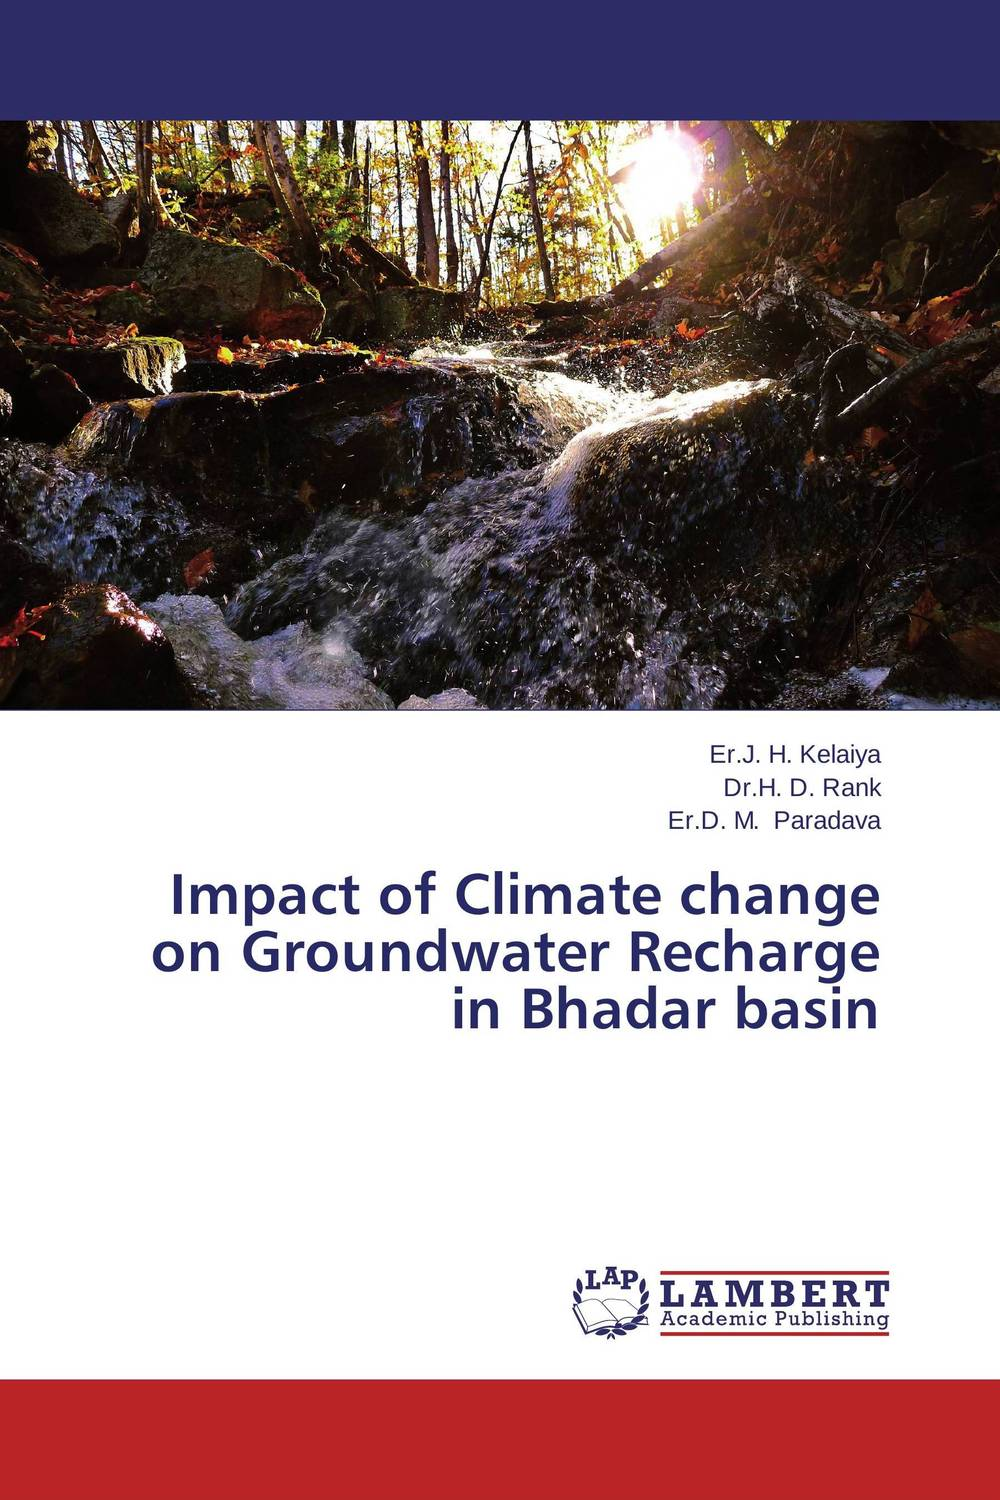 Impact of Climate change on Groundwater Recharge in Bhadar basin found in brooklyn